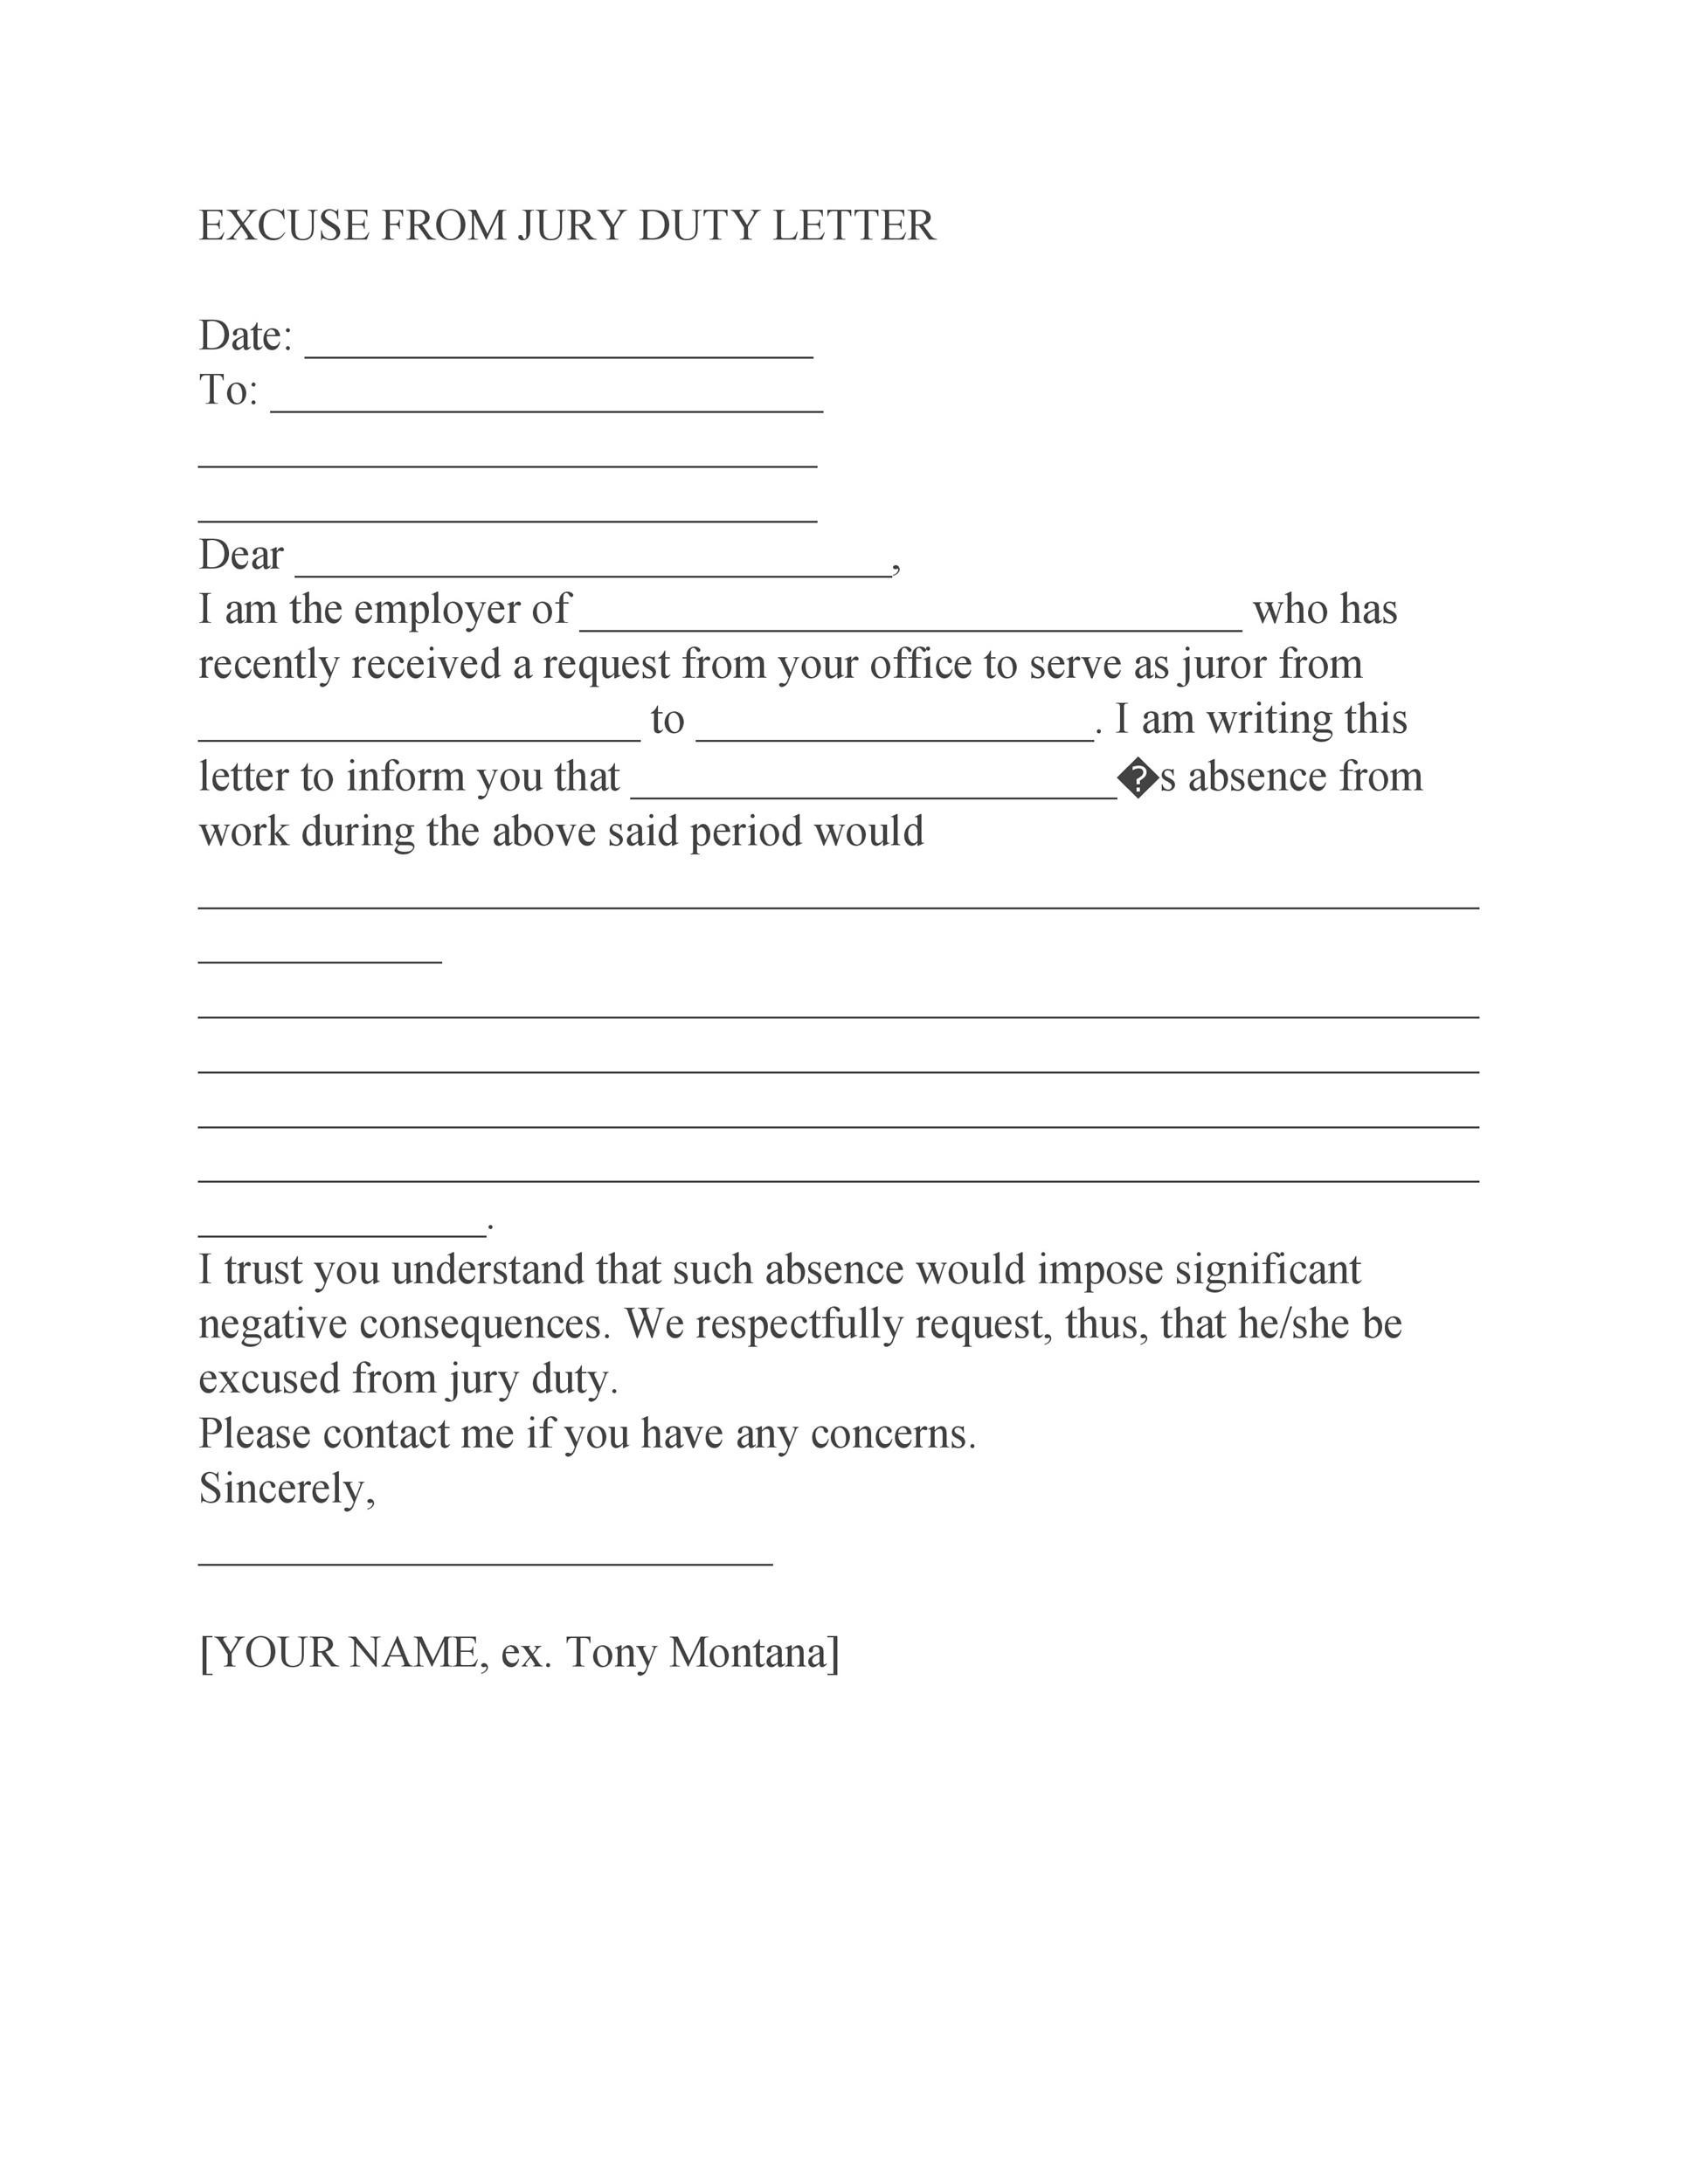 33 Best Jury Duty Excuse Letters Tips Templatelab